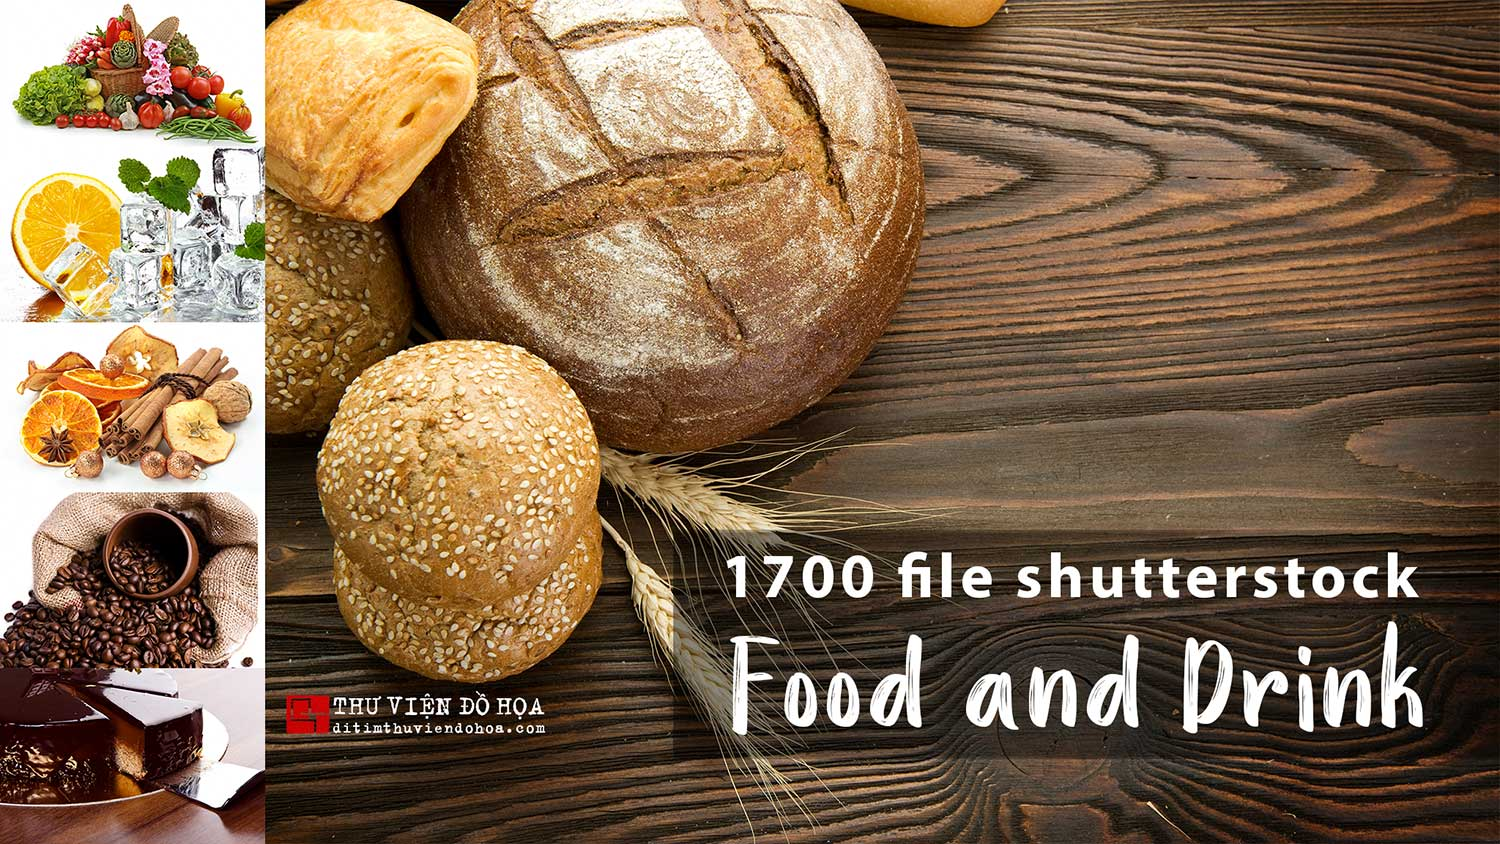 [ Stock ] 1700 file shutterstock Food and Drink